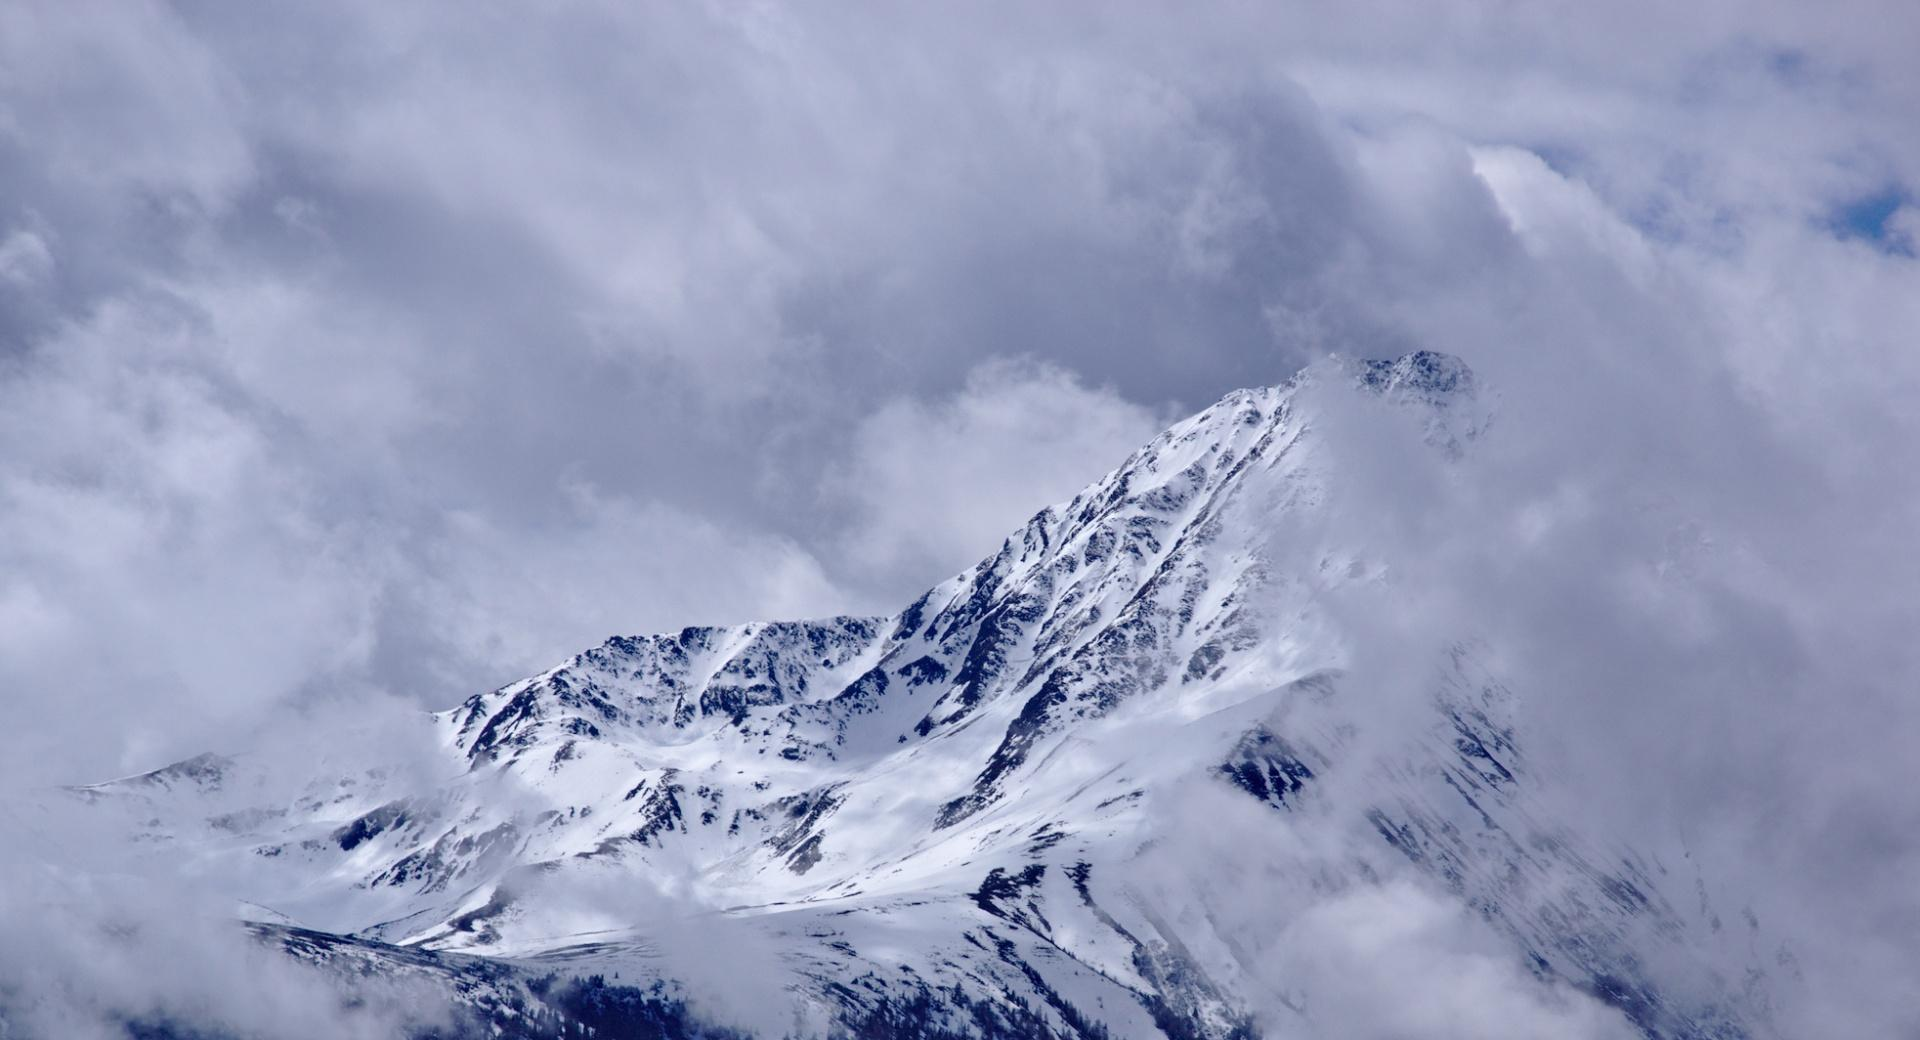 Mountain Peak With Drifting Clouds wallpapers HD quality